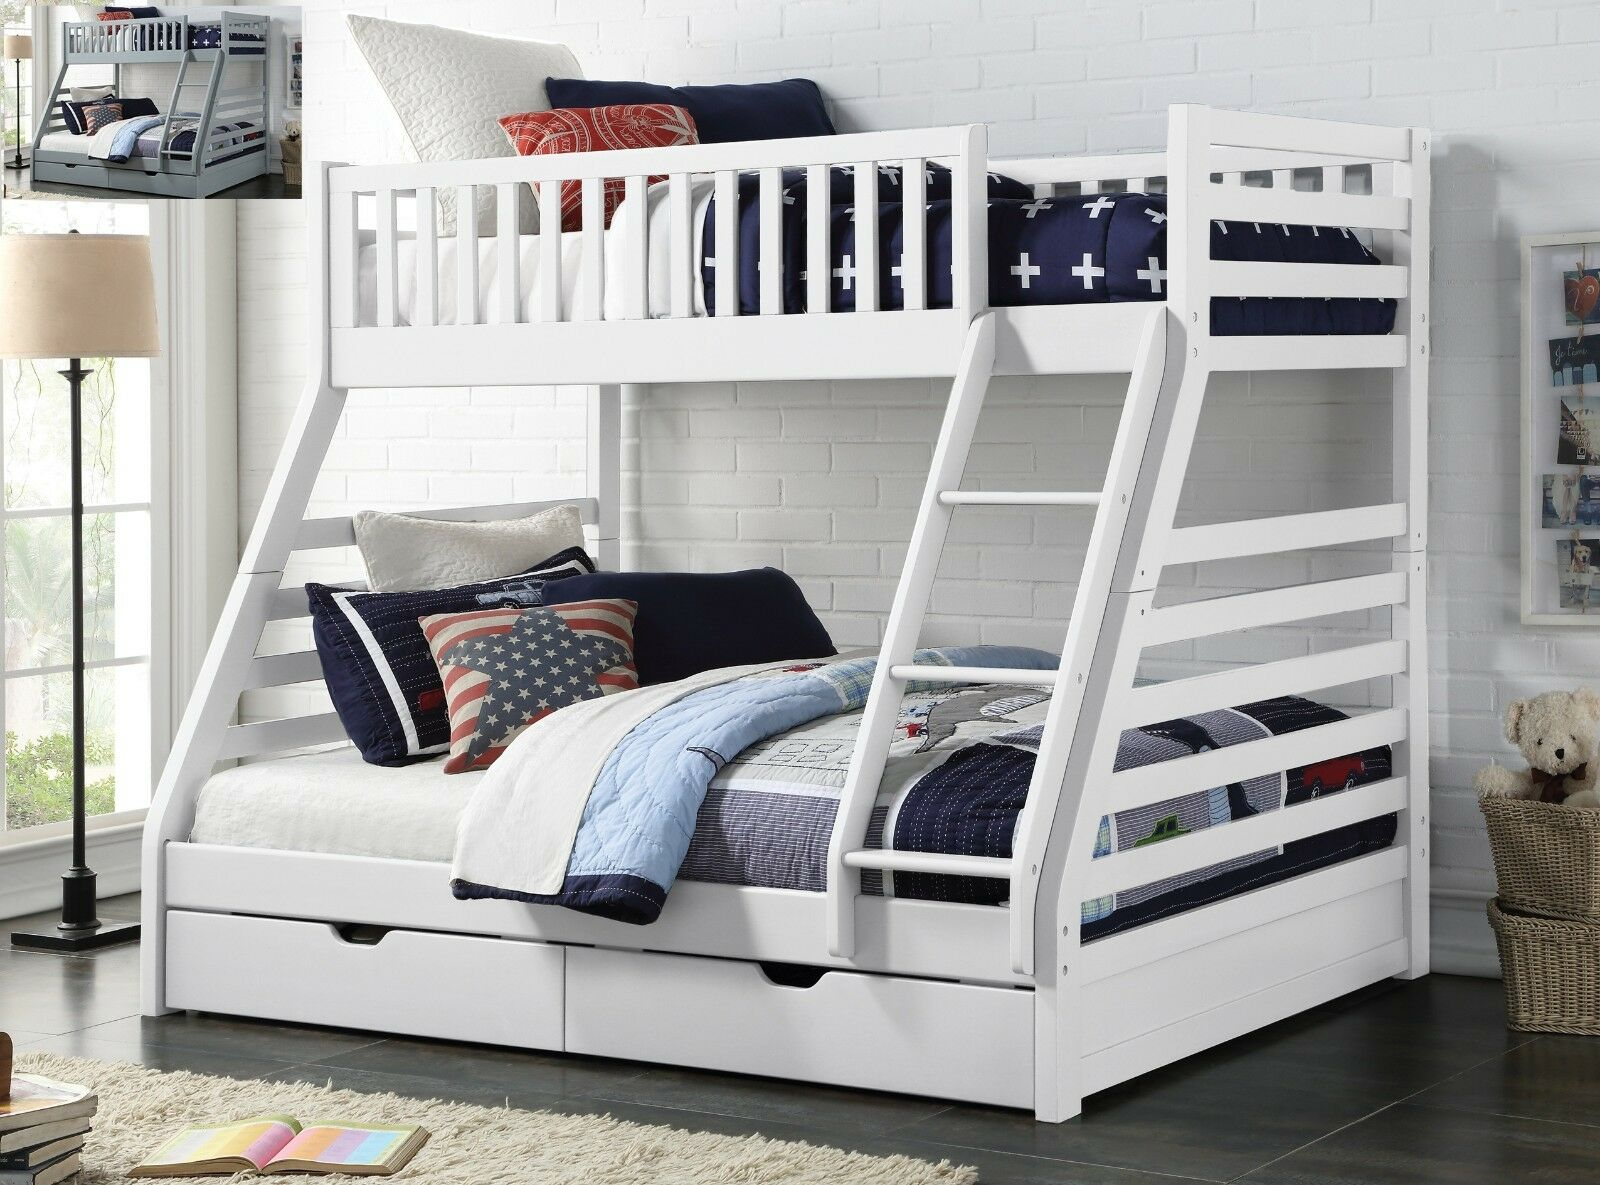 Details About Maine Triple Sleeper Bunk Bed Frame Solid Wood 2 Storage Drawers Various Colours